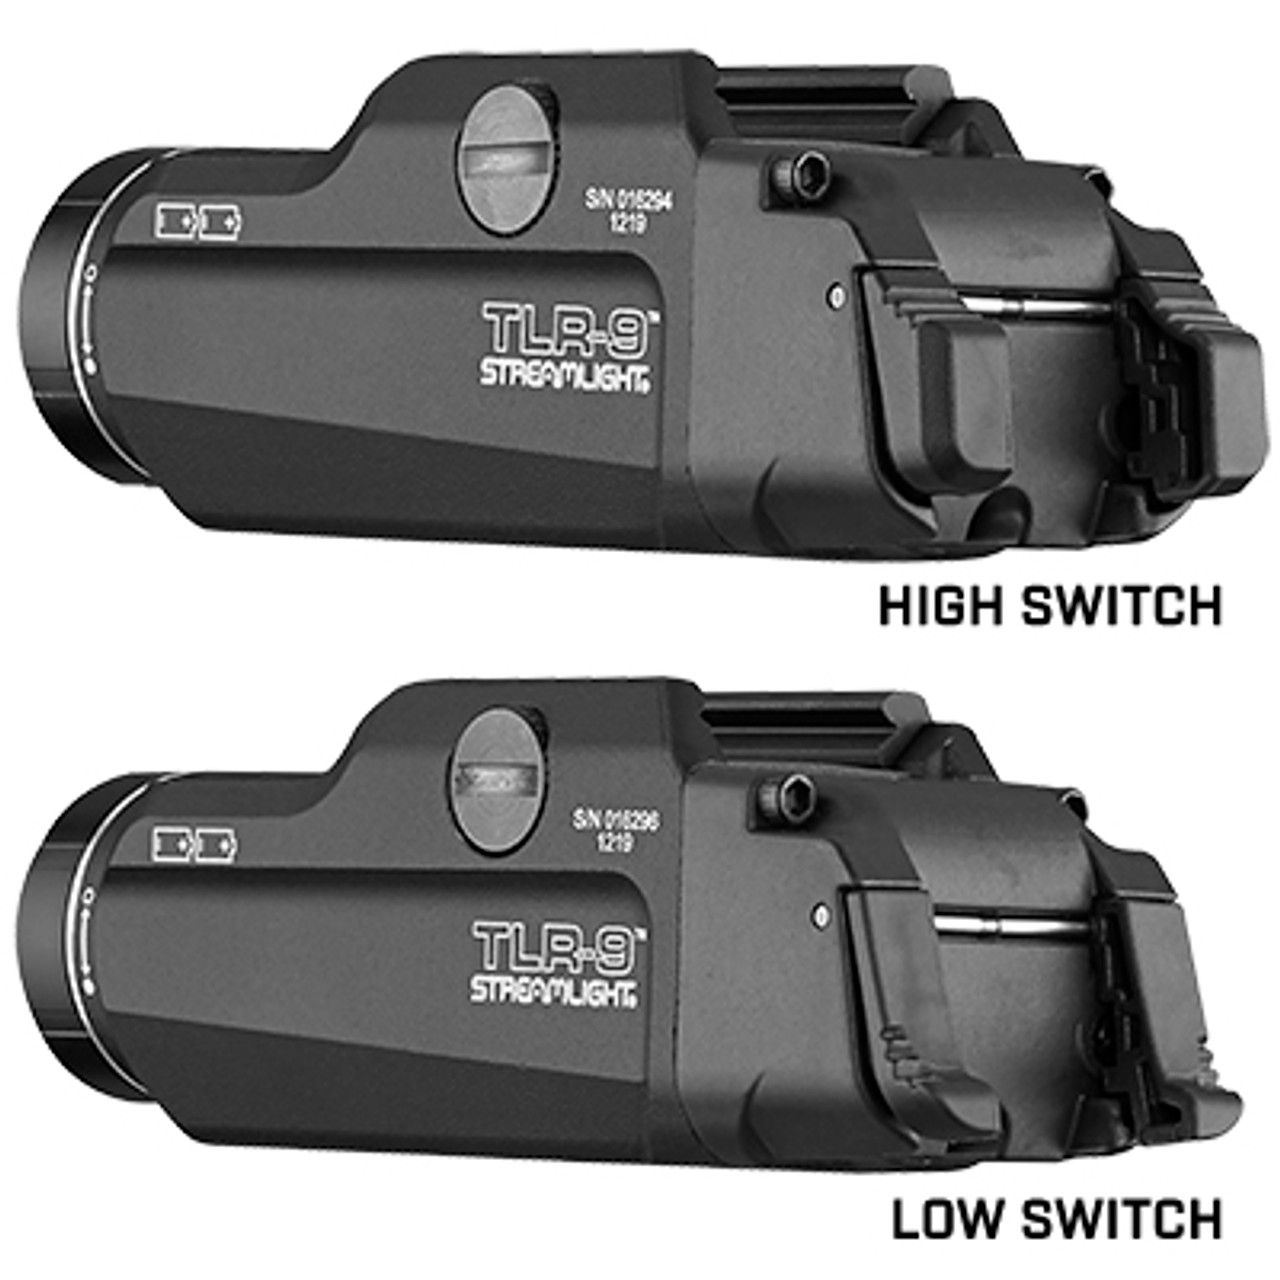 Streamlight - TLR-9™ GUN LIGHT WITH AMBIDEXTROUS REAR SWITCH OPTIONS